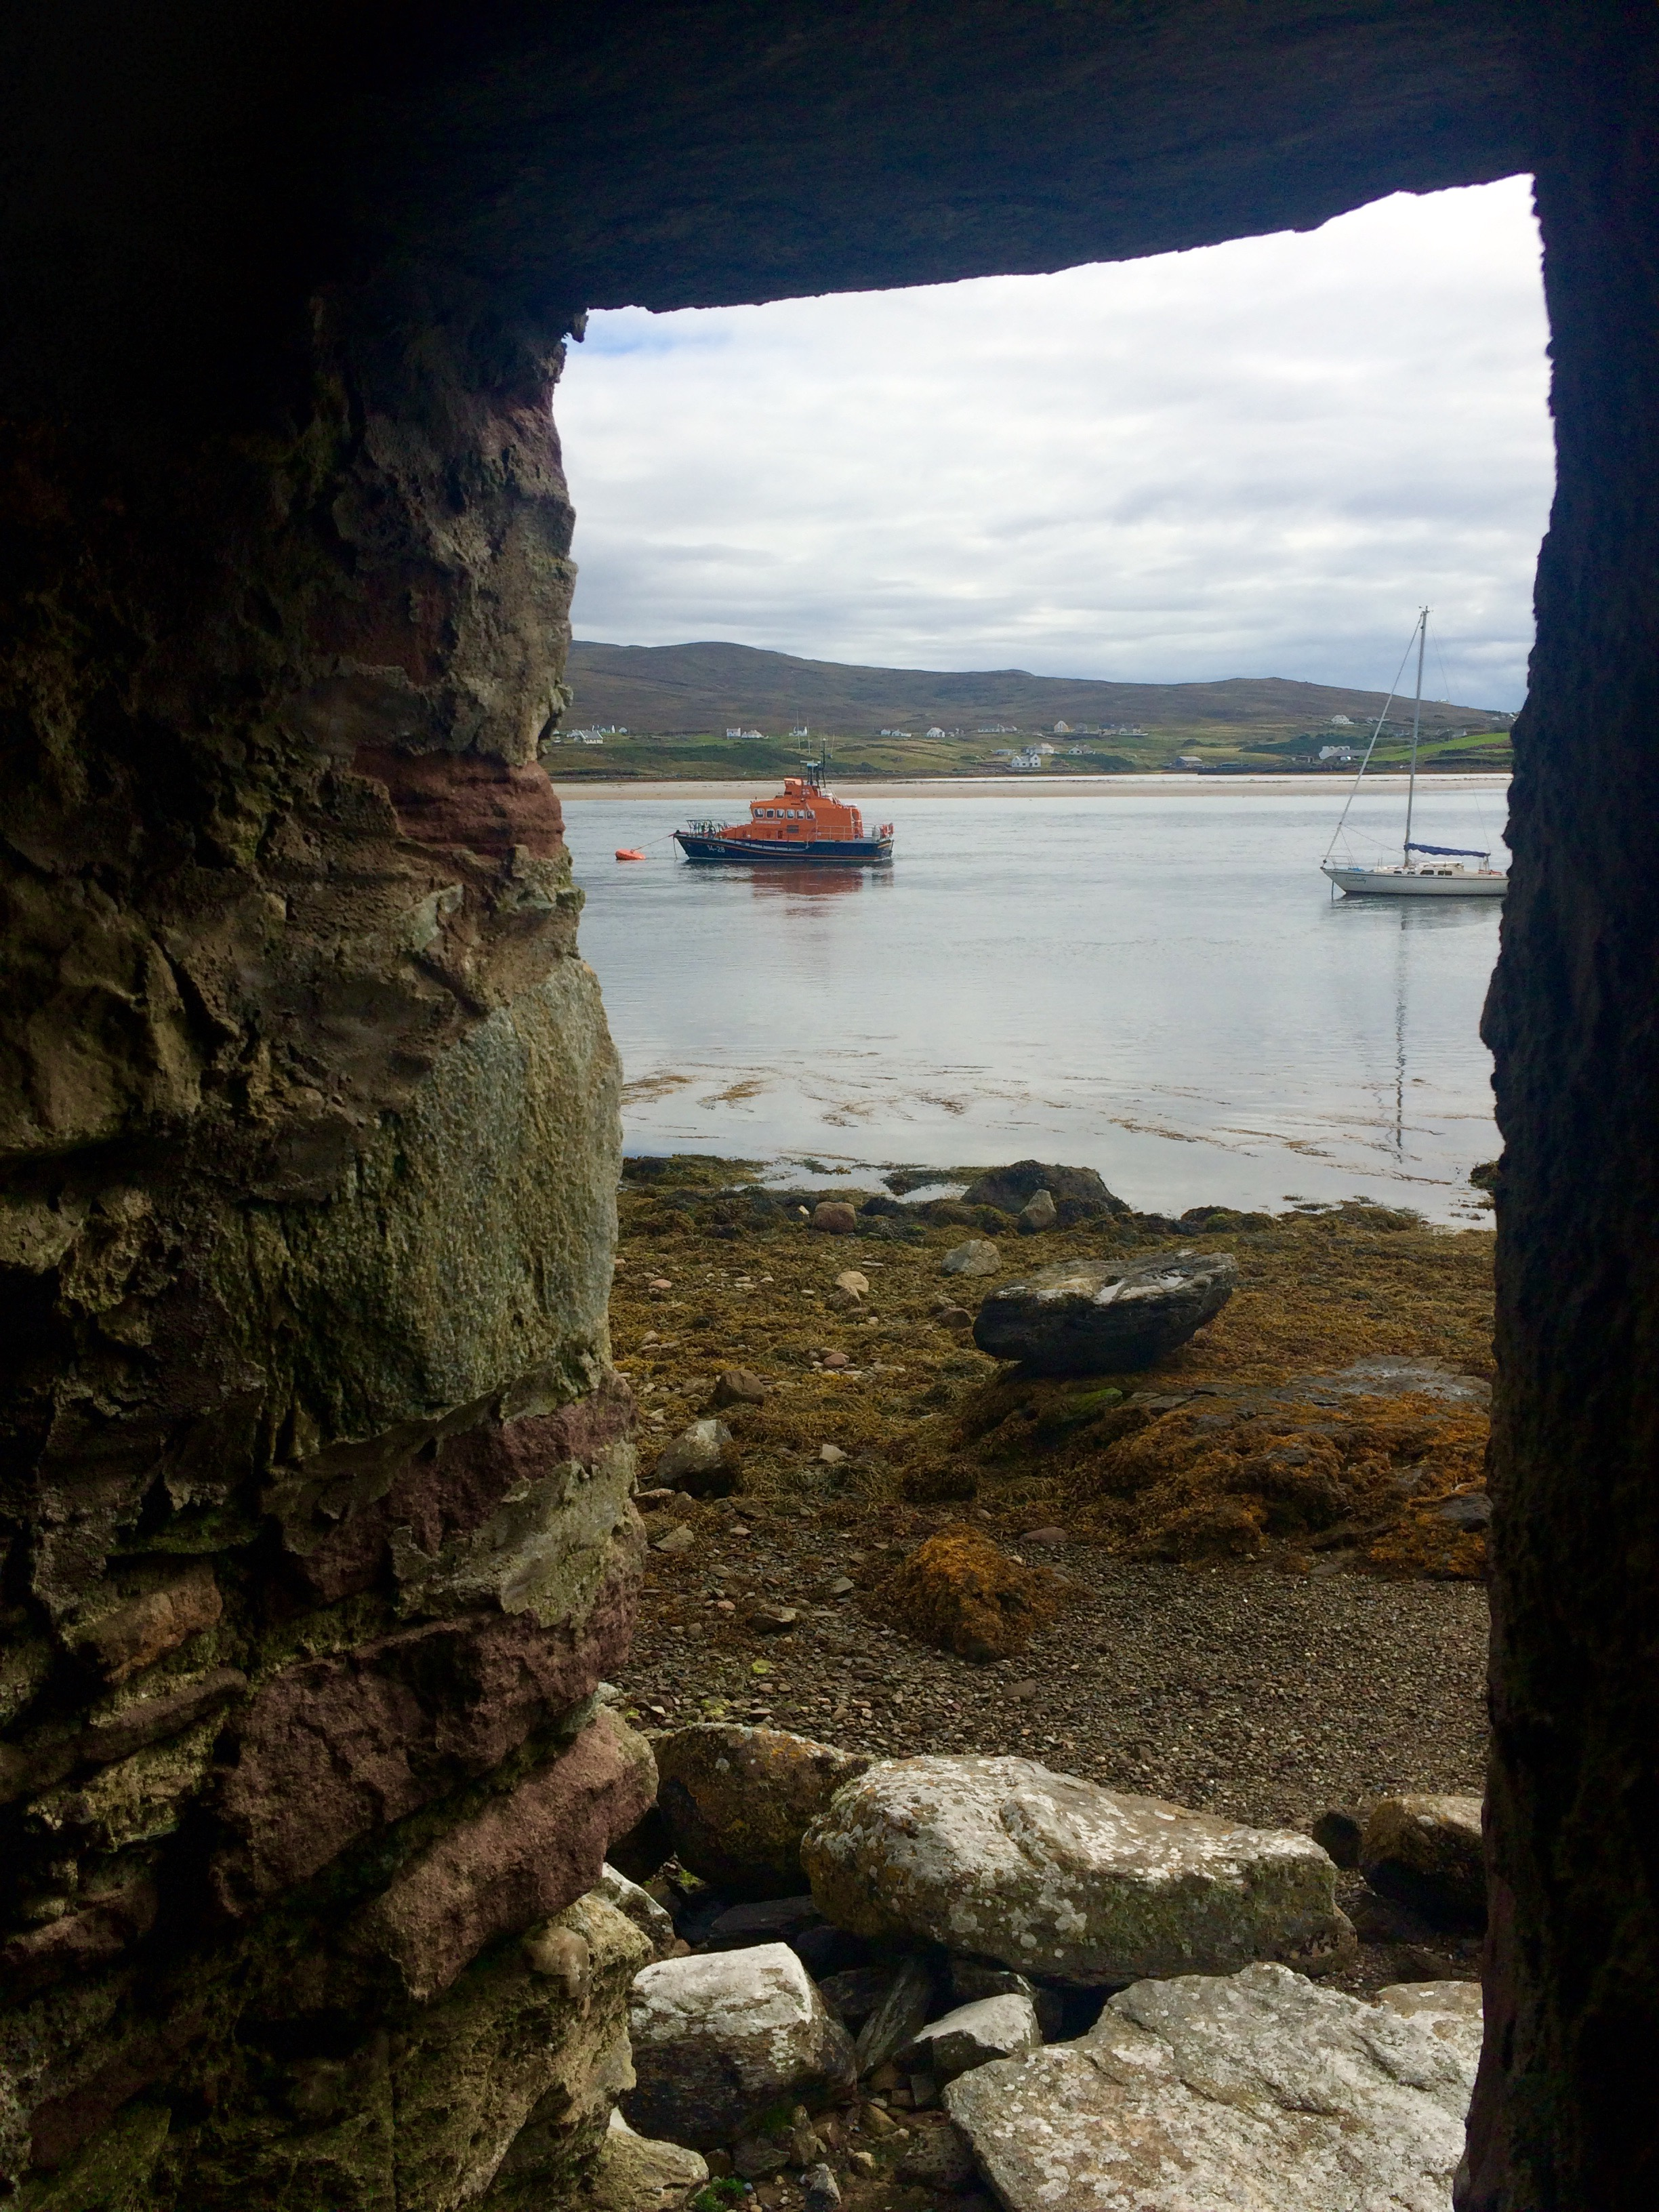 Achill lifeboat from inside the castle